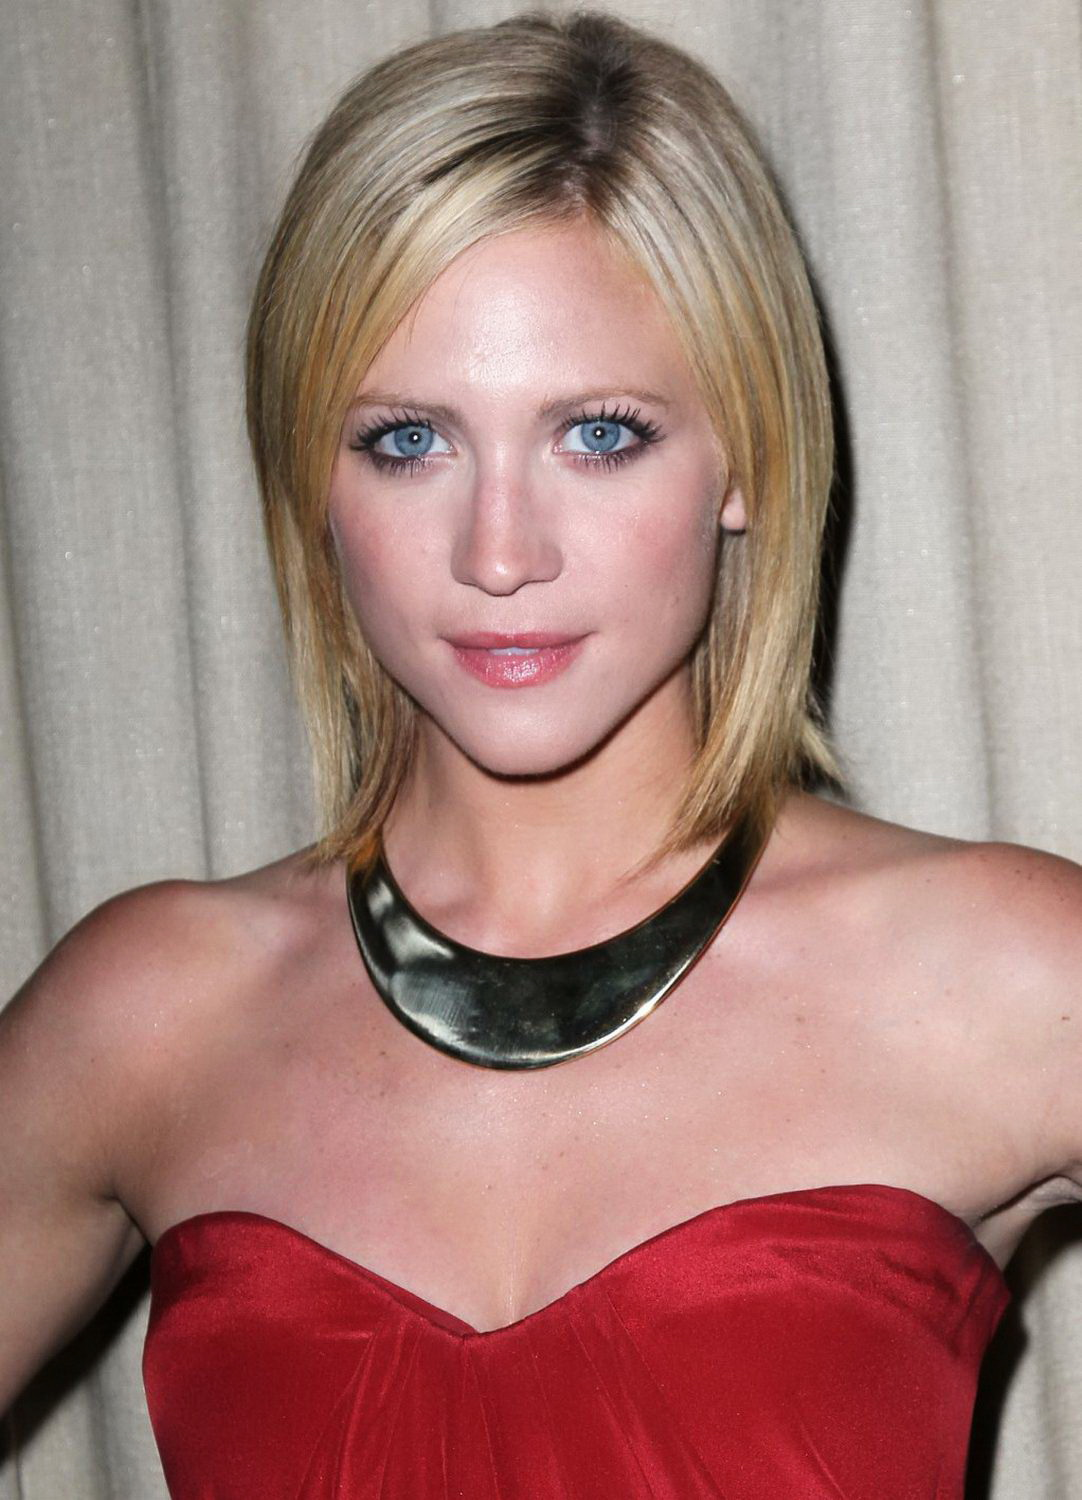 Brittany Snow - CAN.PARTY! fundraiser event - Palihouse, West Hollywood - August 18, 2012